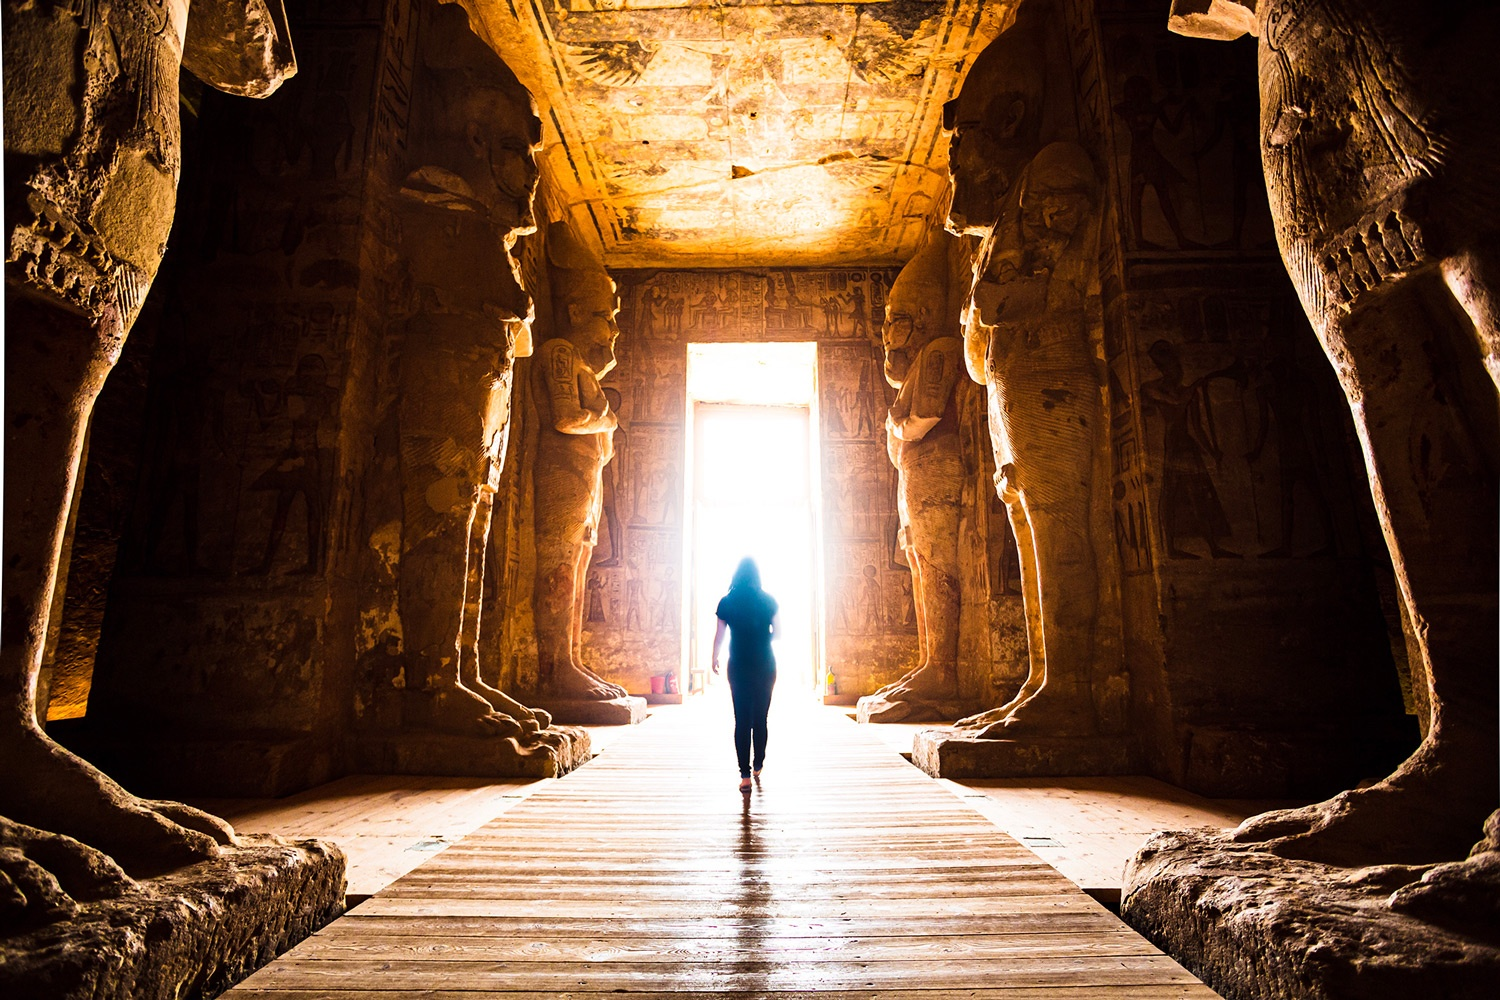 Things you wish you knew before your trip to Egypt